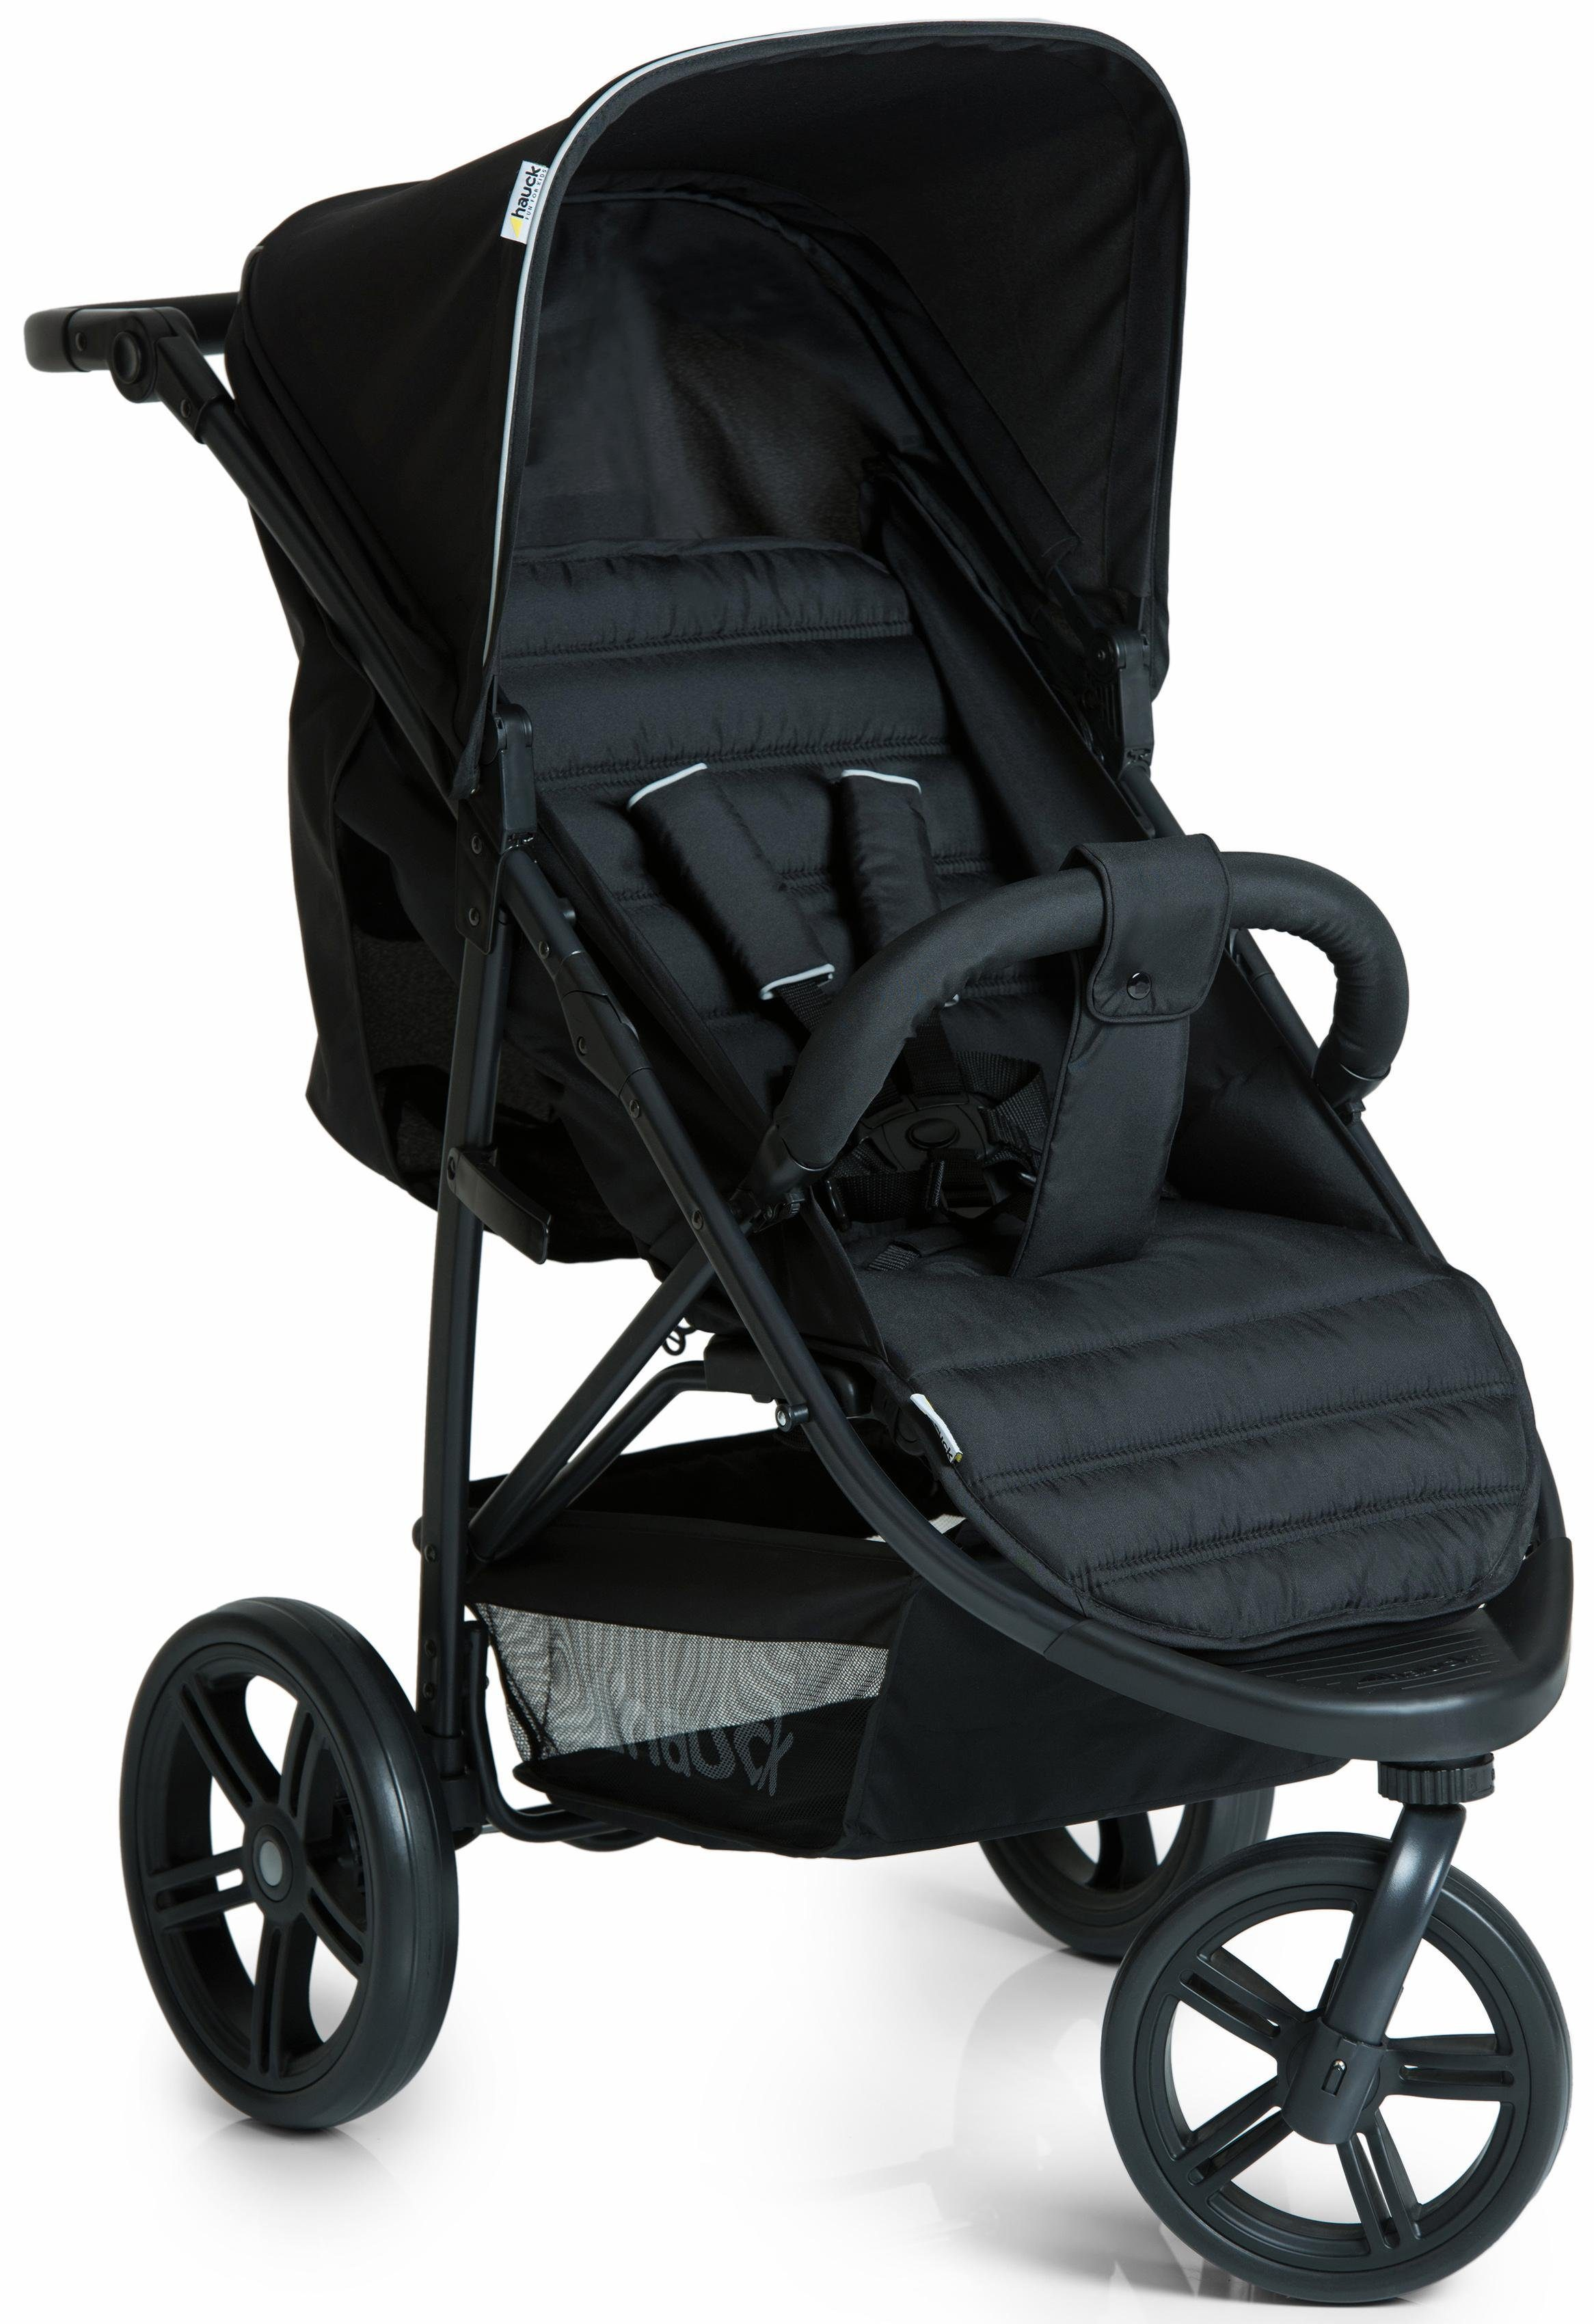 hauck FUN FOR KIDS Dreirad Kinderwagen, »Rapid 3 Caviar/Black«